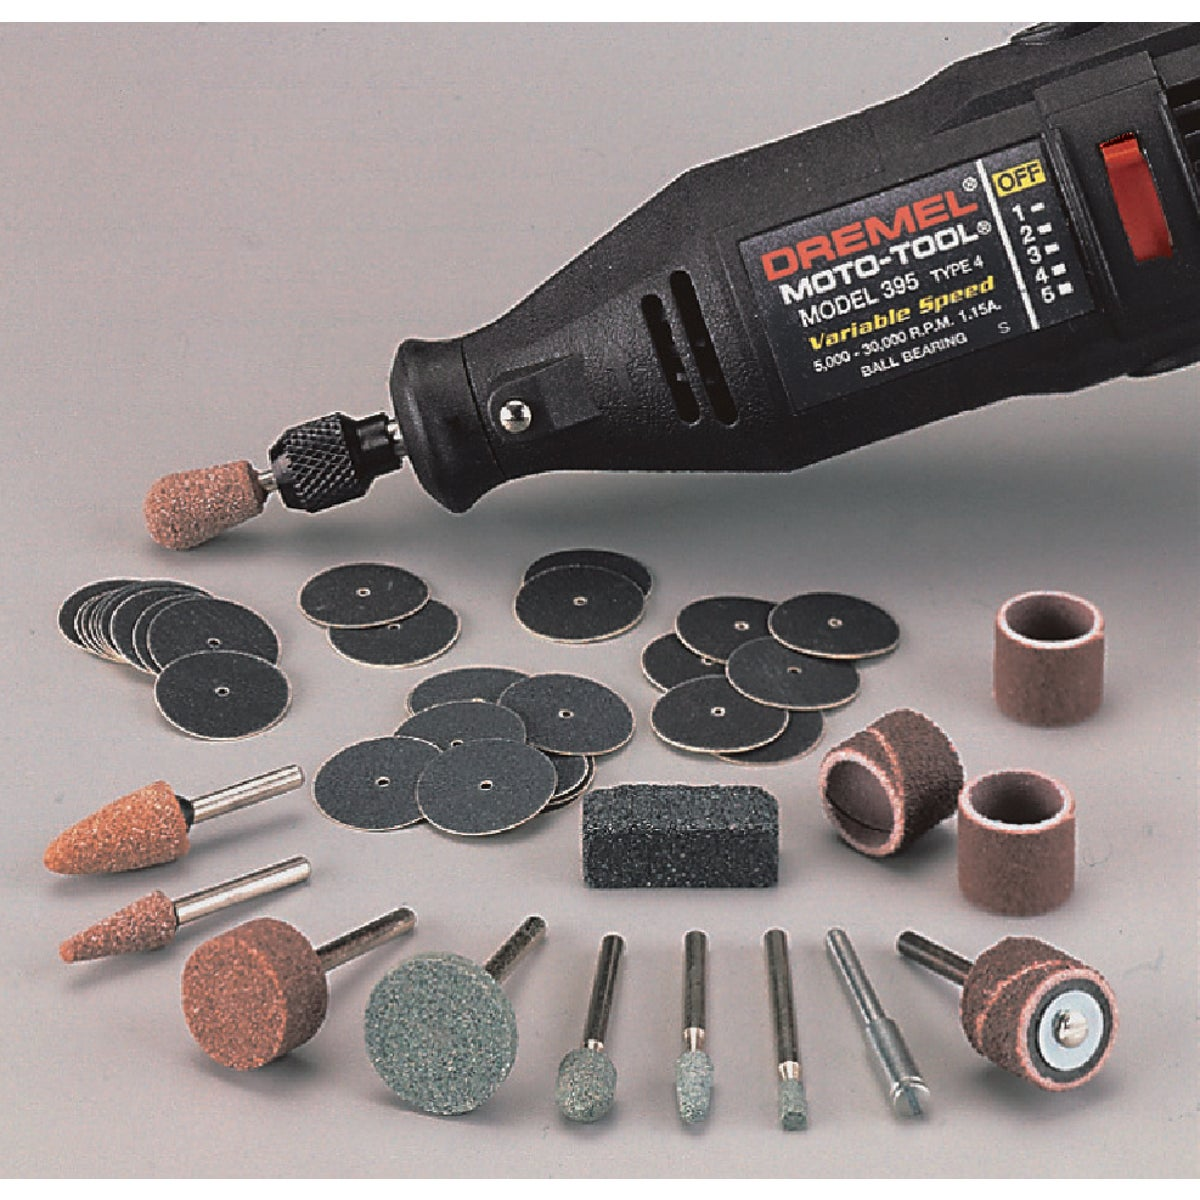 SANDING BIT SET - 686-01 by Dremel Mfg Co